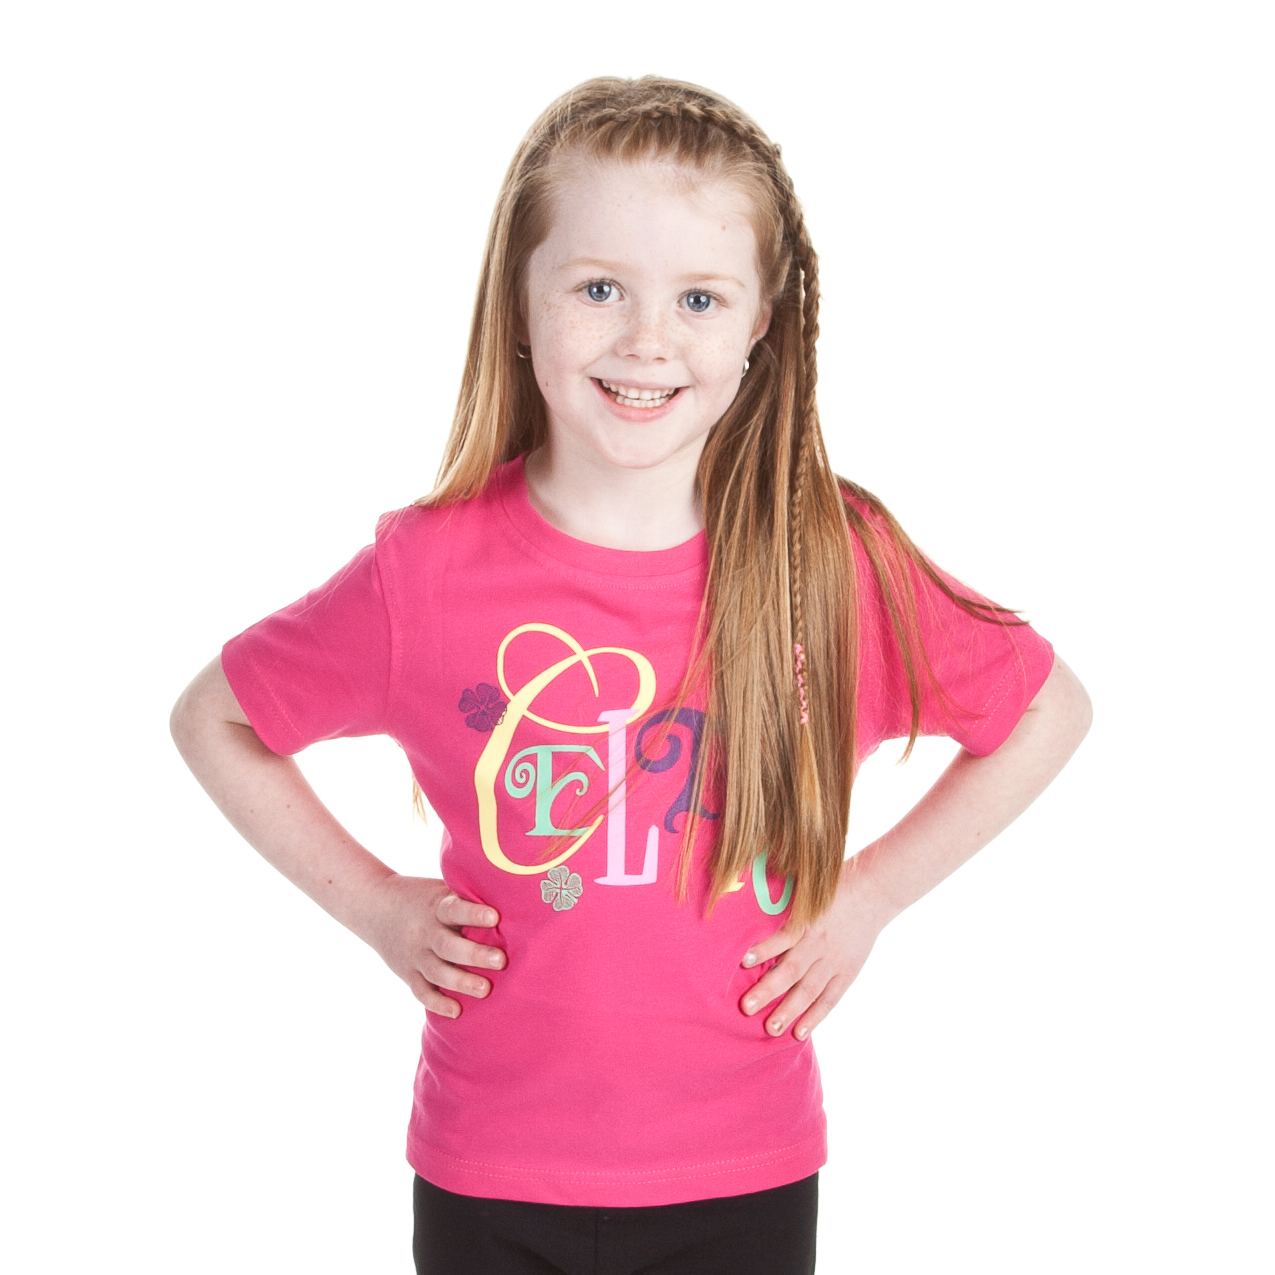 Celtic Gloss Print T-Shirt - Pink - Girls